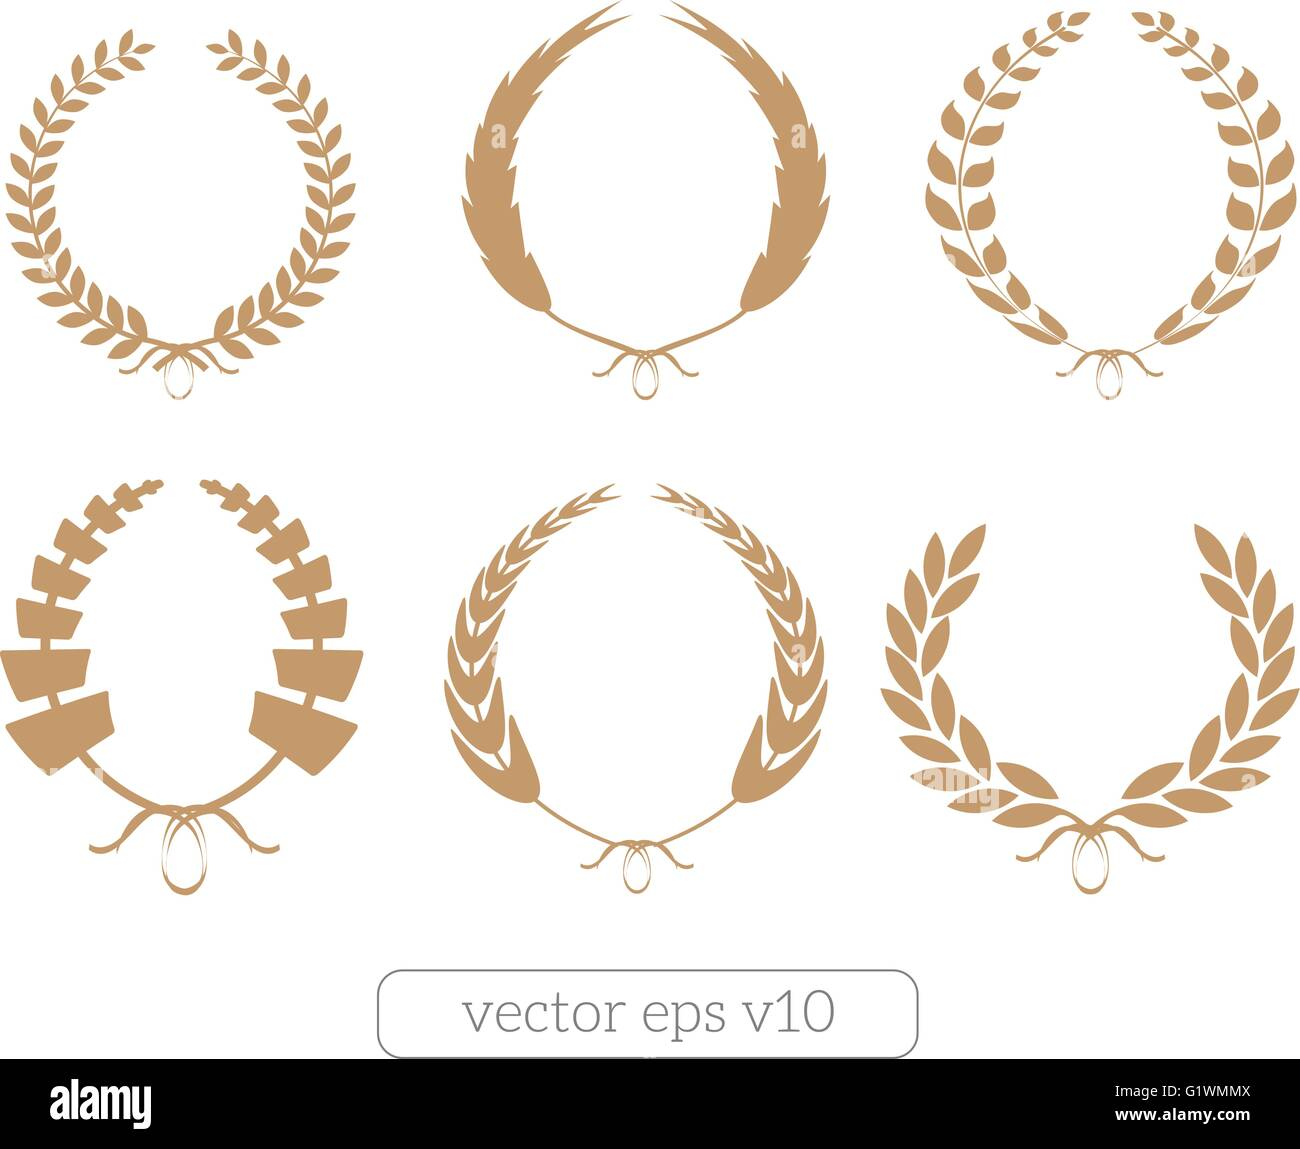 Gold Laurel Wreaths Vector Collection